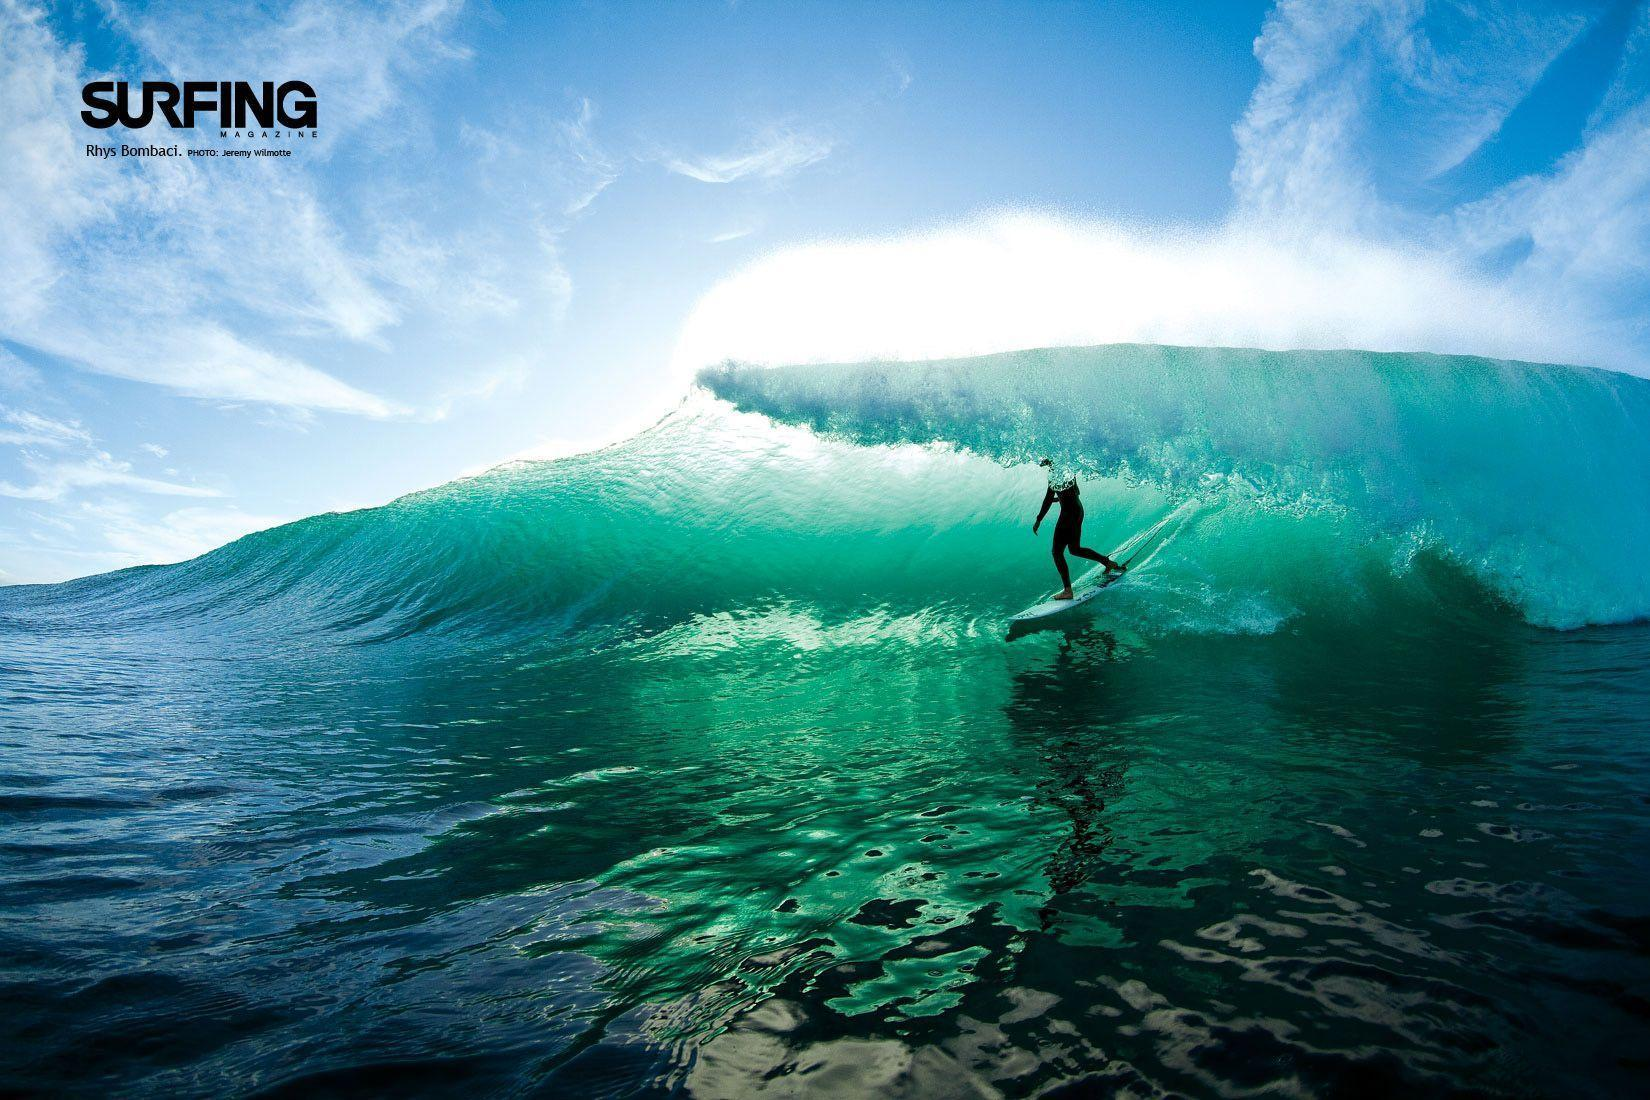 HD Surfing Wallpapers 1650x1100